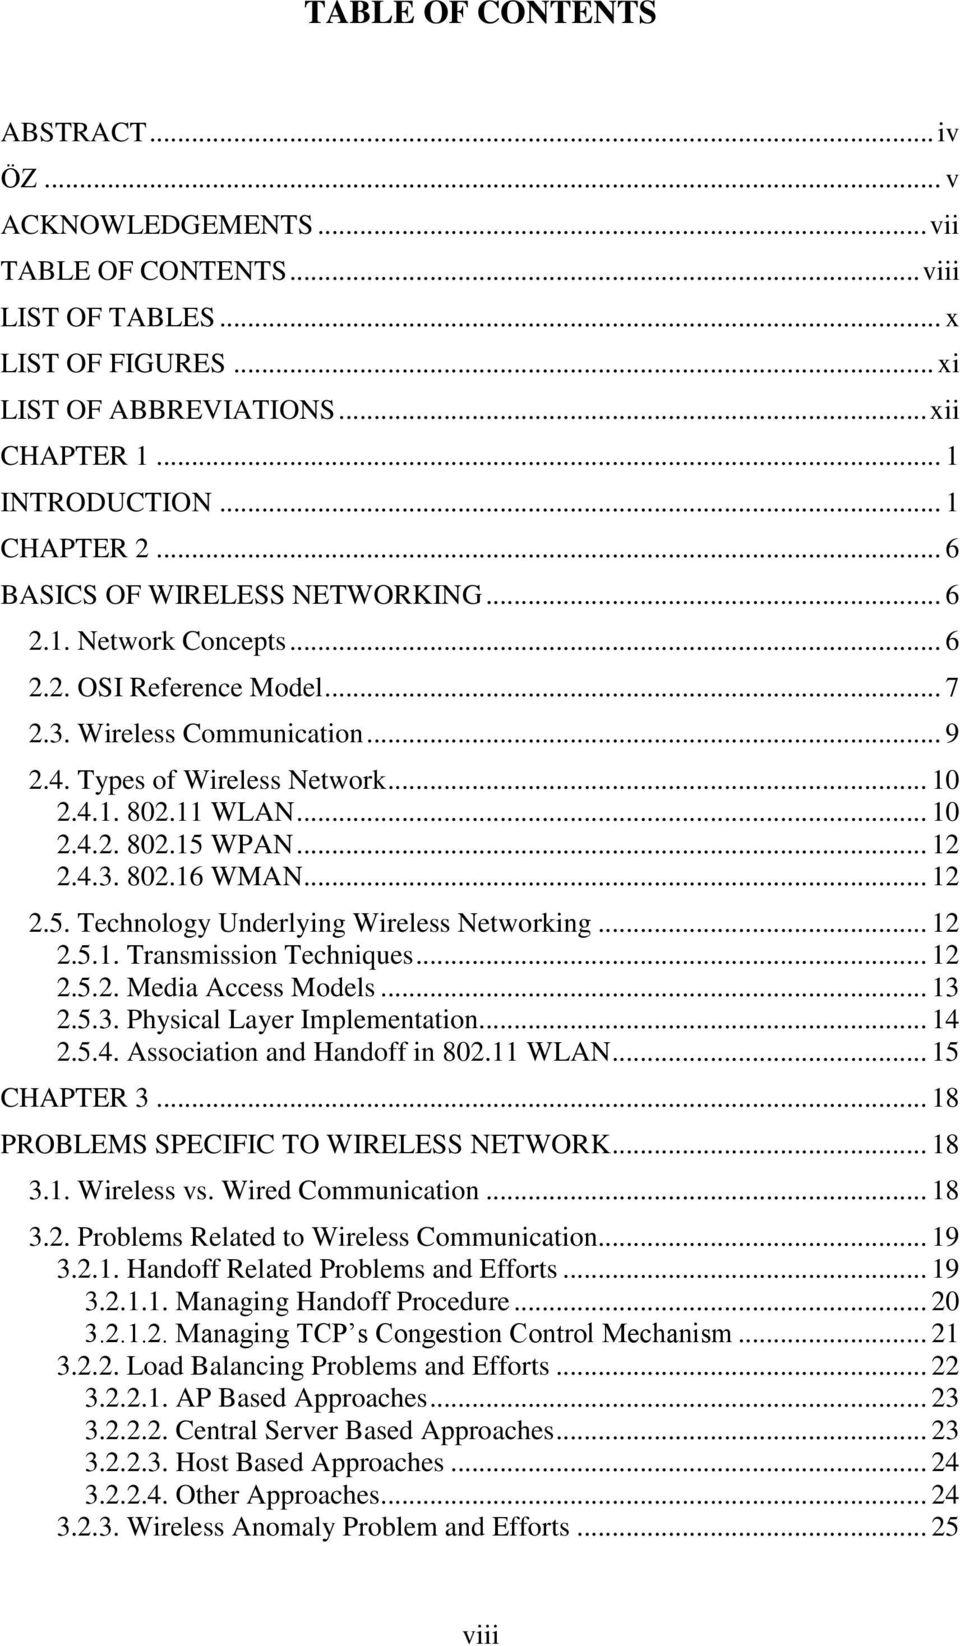 11 WLAN... 10 2.4.2. 802.15 WPAN... 12 2.4.3. 802.16 WMAN... 12 2.5. Technology Underlying Wireless Networking... 12 2.5.1. Transmission Techniques... 12 2.5.2. Media Access Models... 13 2.5.3. Physical Layer Implementation.